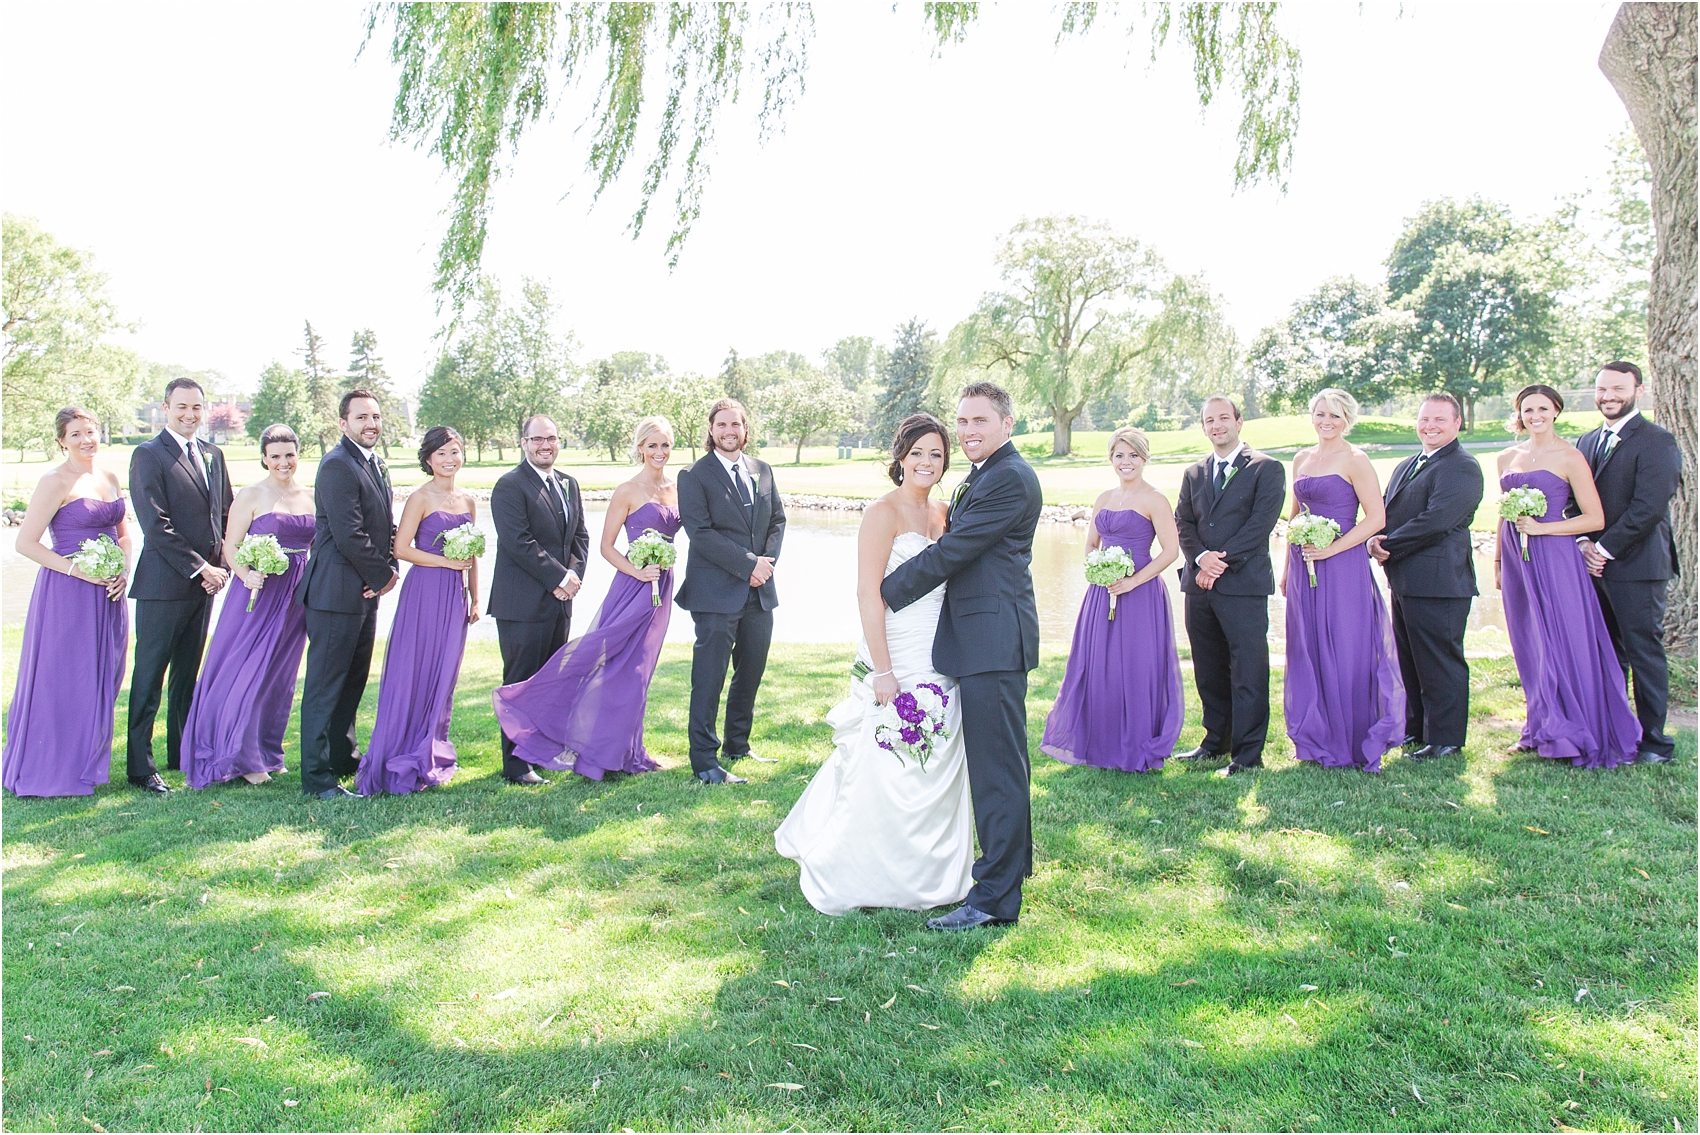 classic-wedding-photos-at-great-oaks-country-club-in-rochester-hills-mi-by-courtney-carolyn-photography_0051.jpg